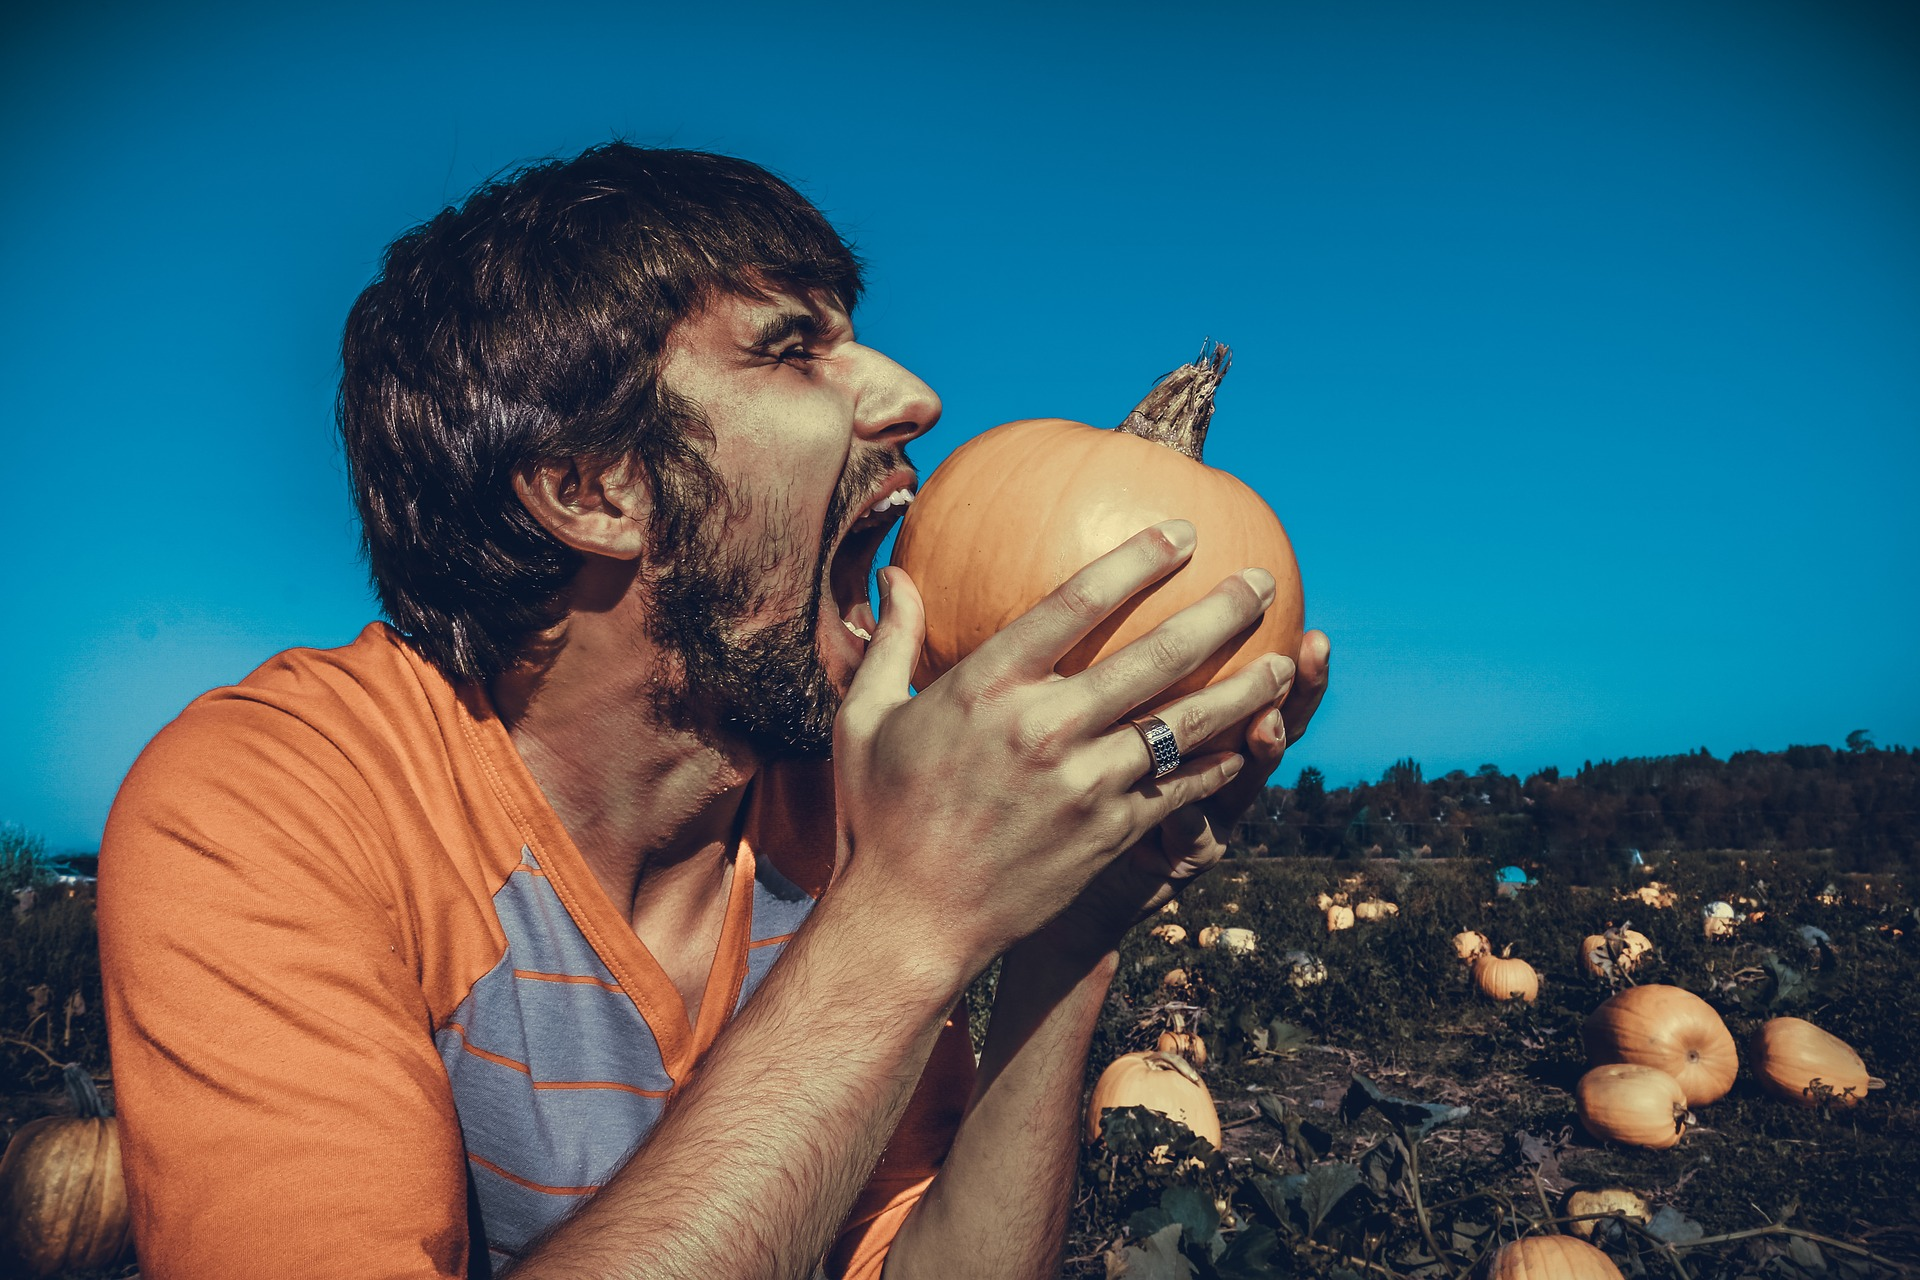 angry hungry hangry man eating pumpkin patch | the lonely tribalist